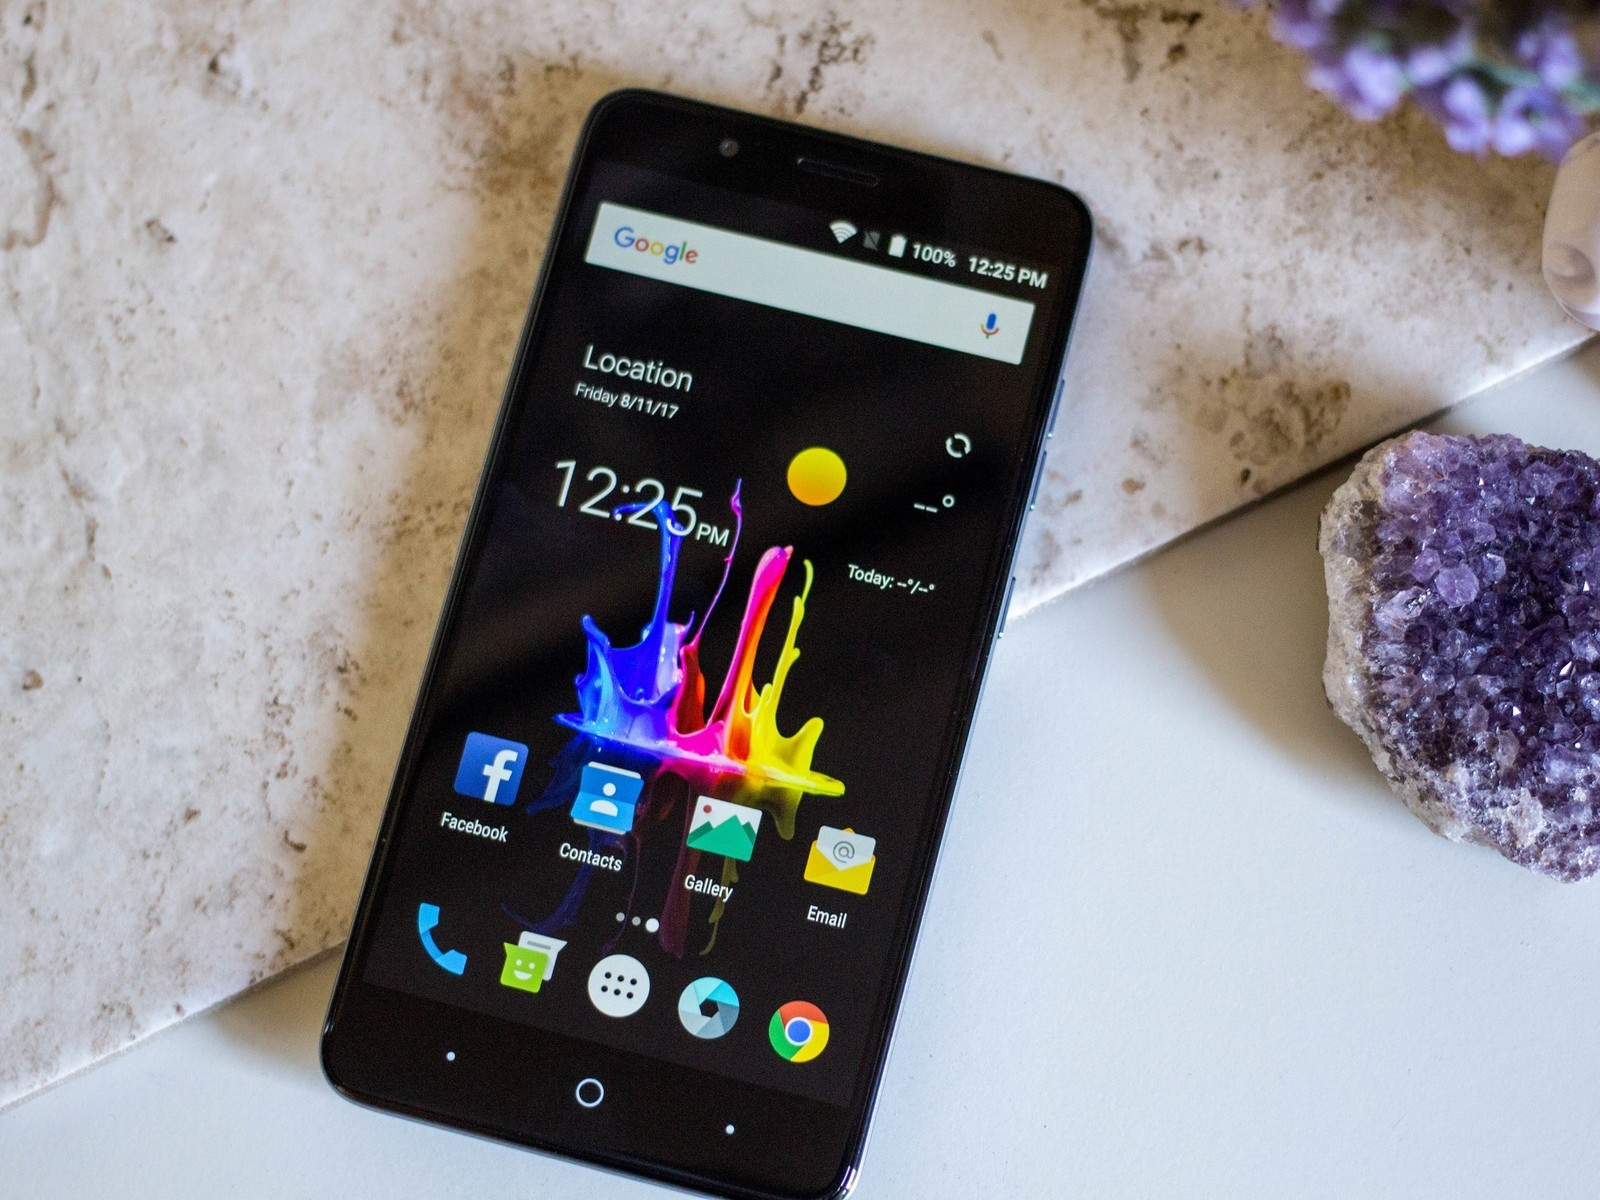 June, zte blade z max t mobile here bought